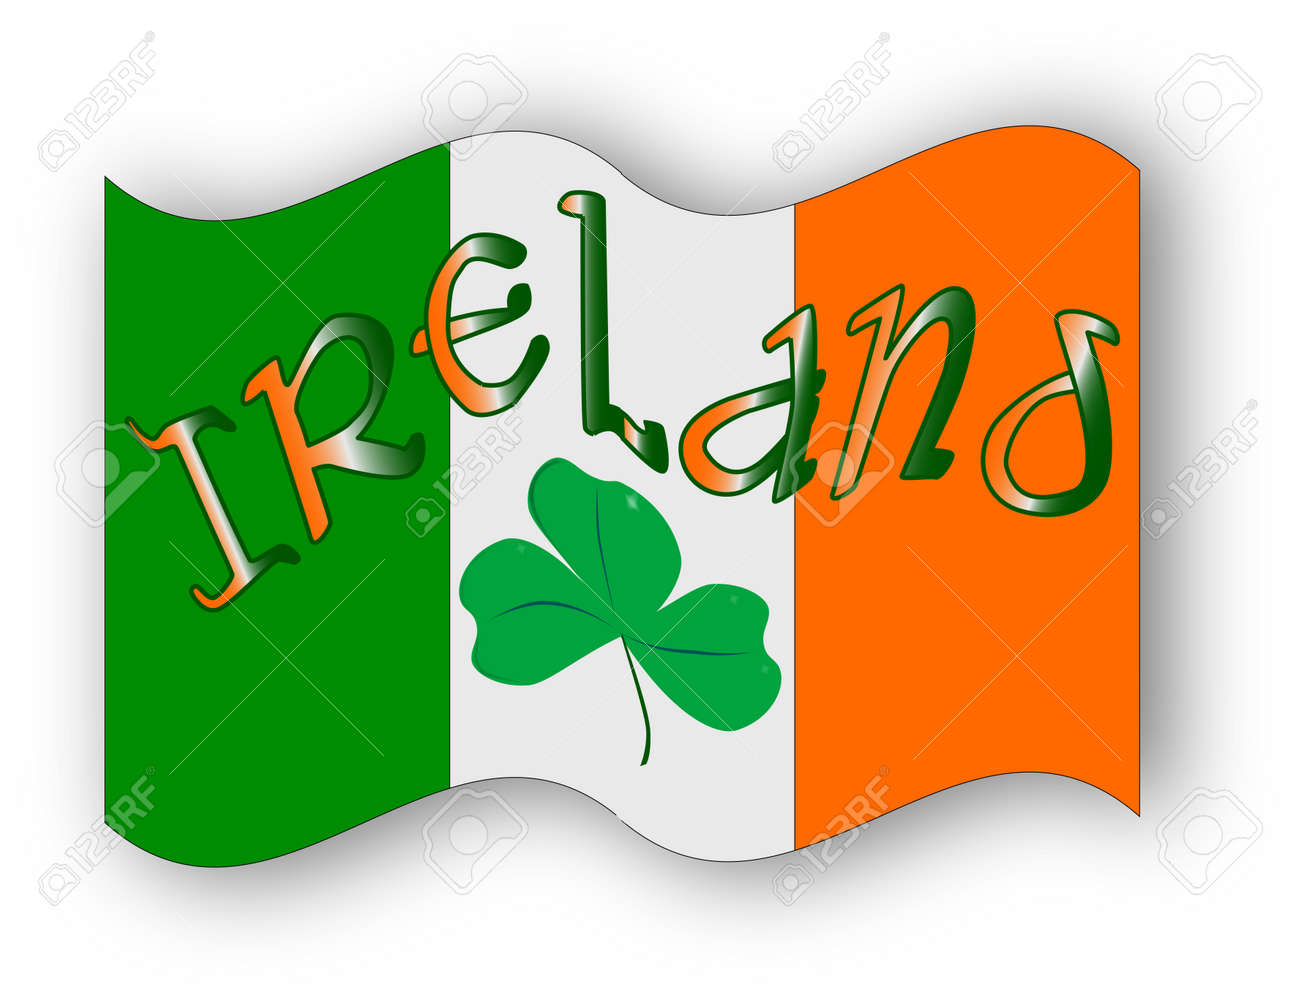 The republic of ireland flag with the text ireland and a lucky the republic of ireland flag with the text ireland and a lucky shamrock a symbol biocorpaavc Gallery